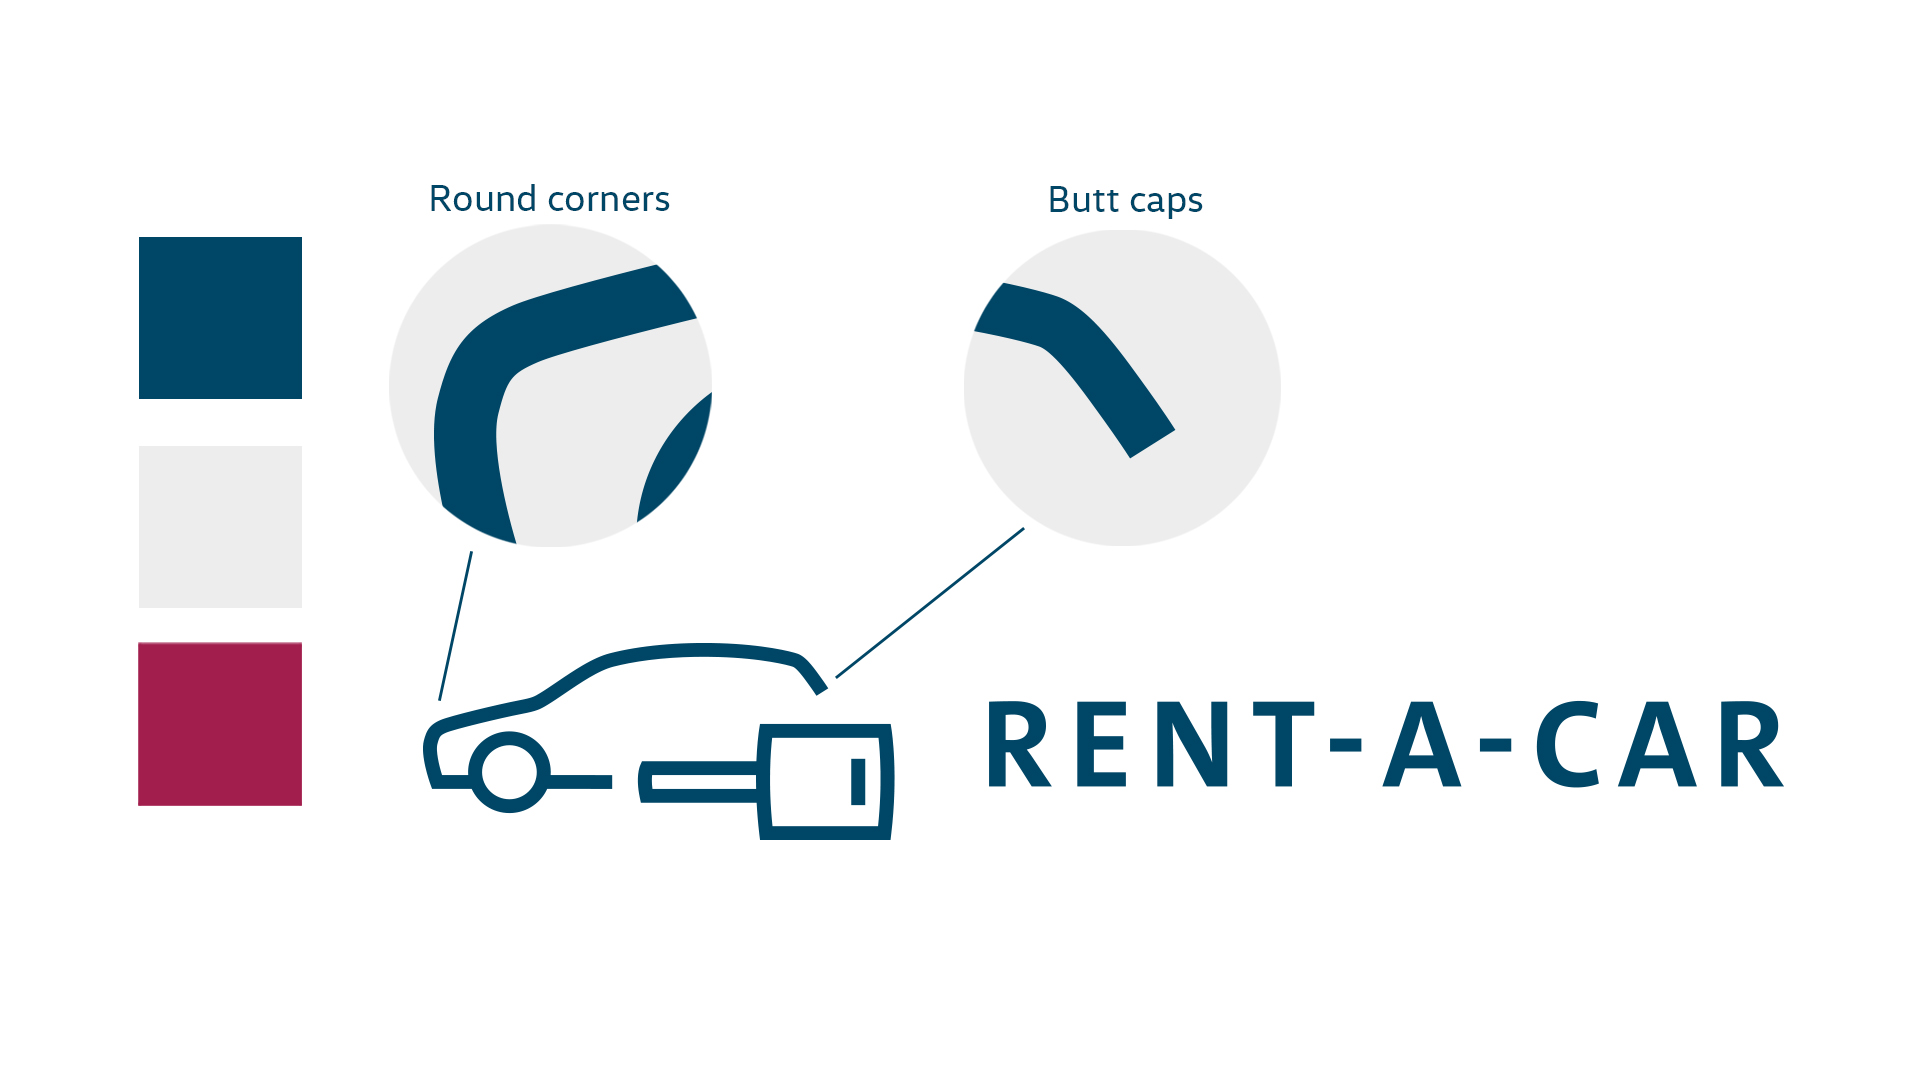 Volkswagen Financial Services - Rent a Car, Styleguide by PicPacker